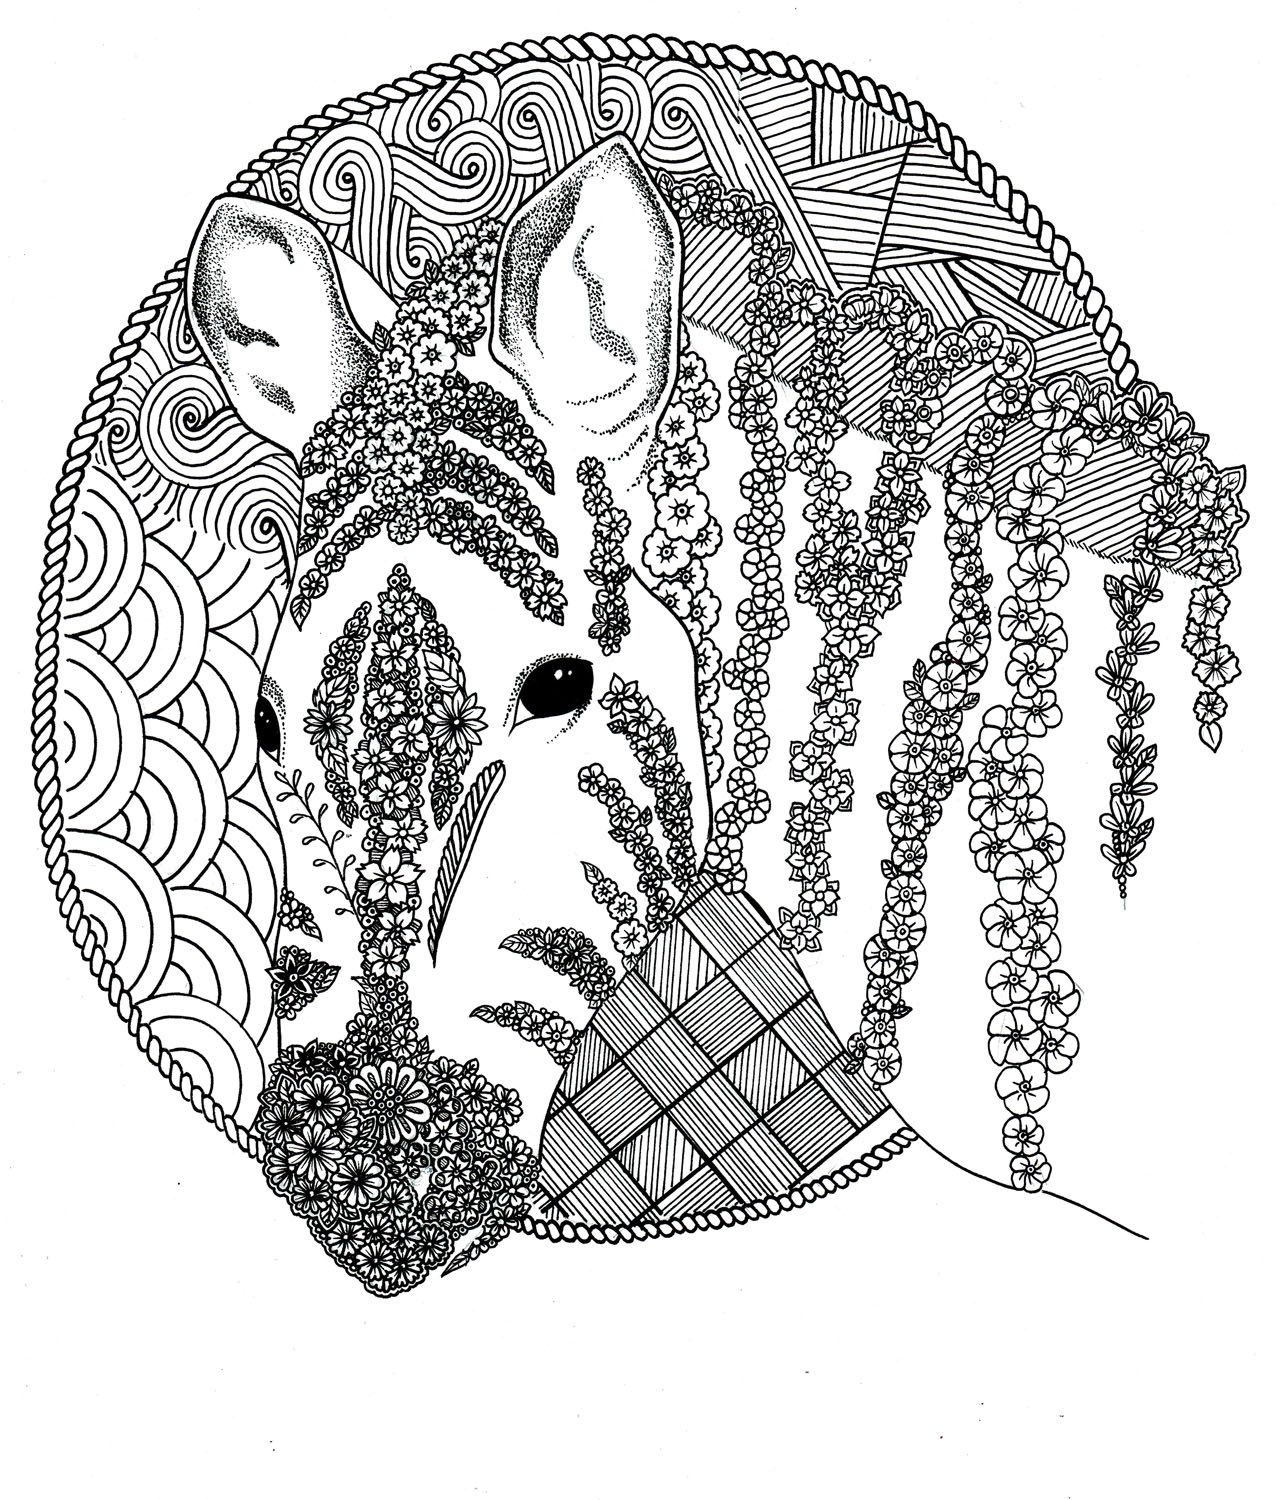 Zebra Coloring Page Zentangle Coloring Pages By Arttocolor On Etsy Zebra Coloring Pages Abstract Coloring Pages Coloring Pages